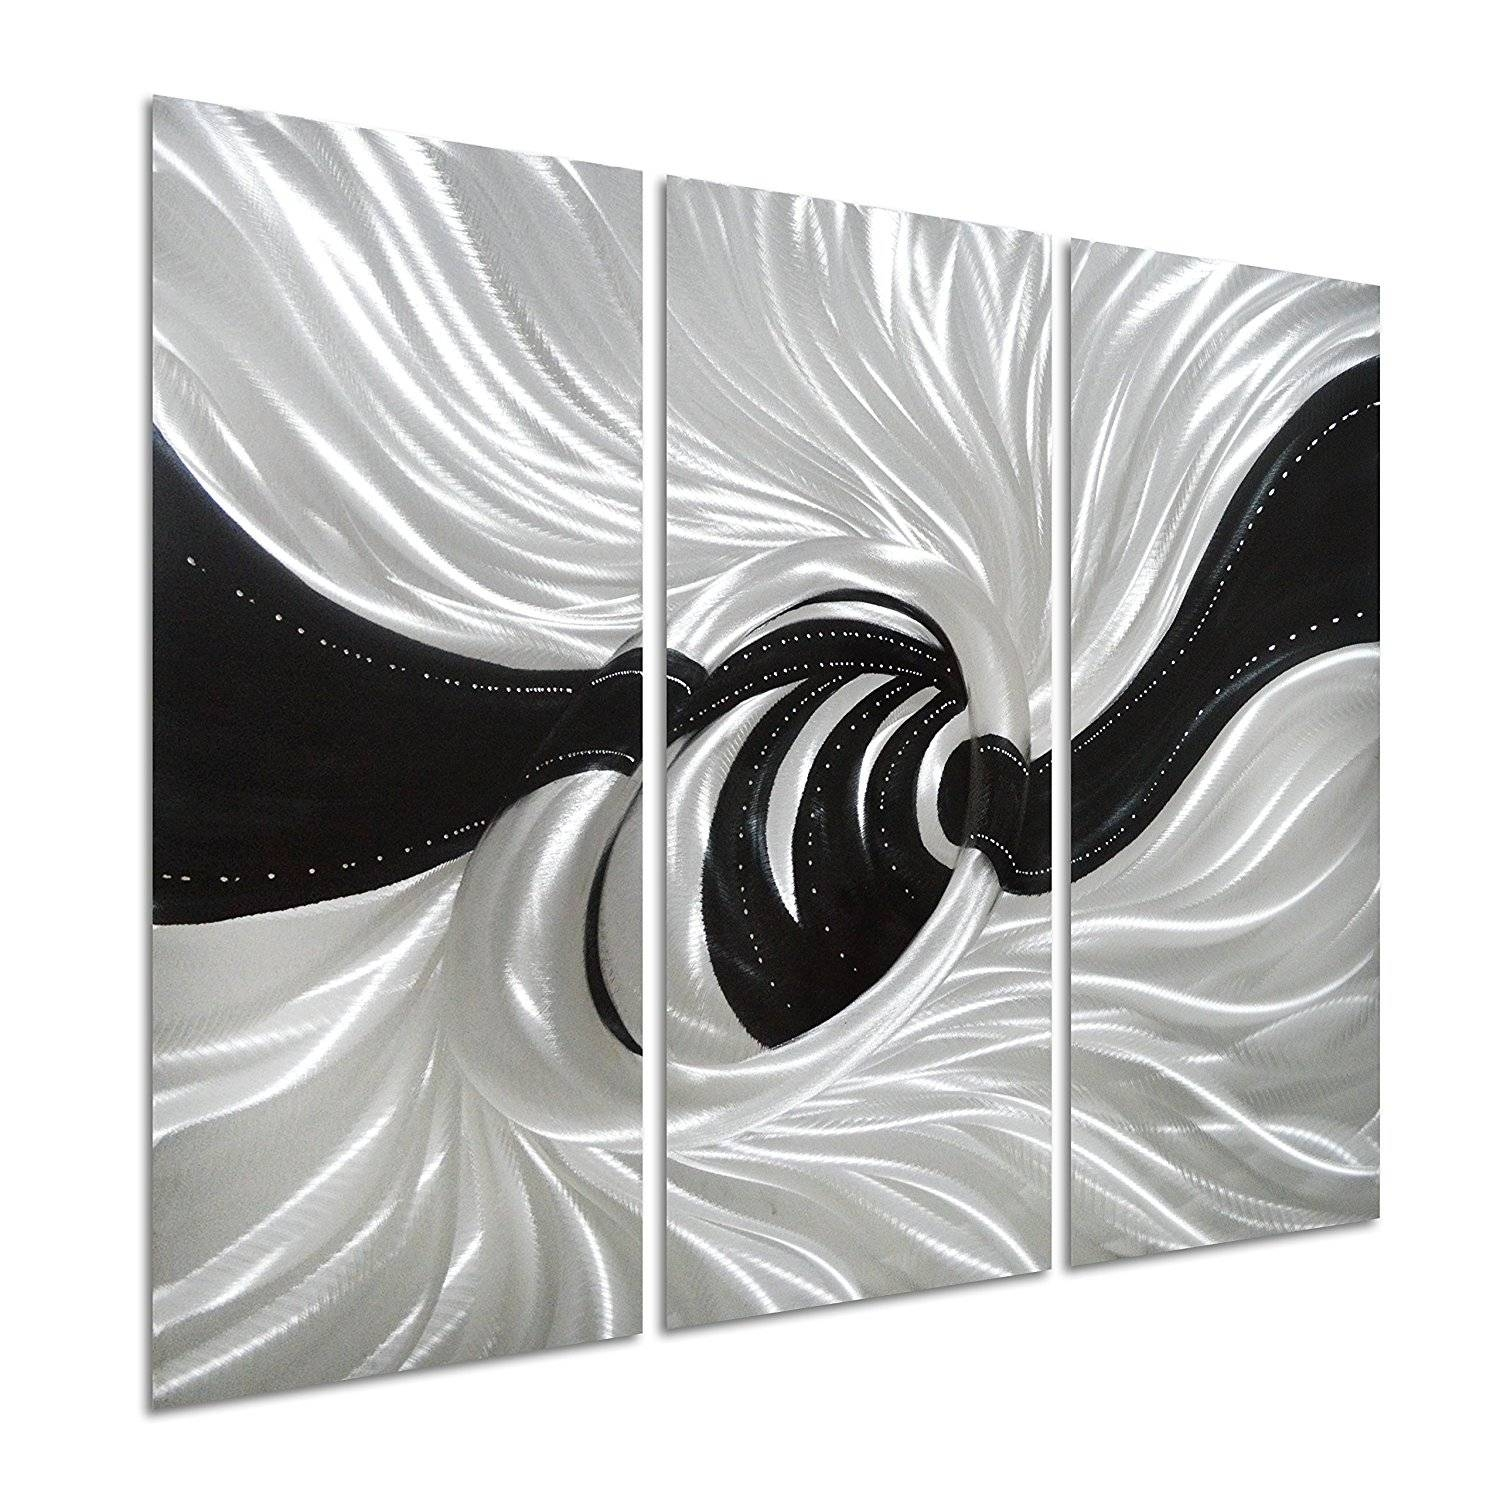 Pure Art Silver Worm Hole – Abstract Metal Wall Art Decor Of 3 Intended For Recent Silver Metal Wall Art (Gallery 14 of 20)